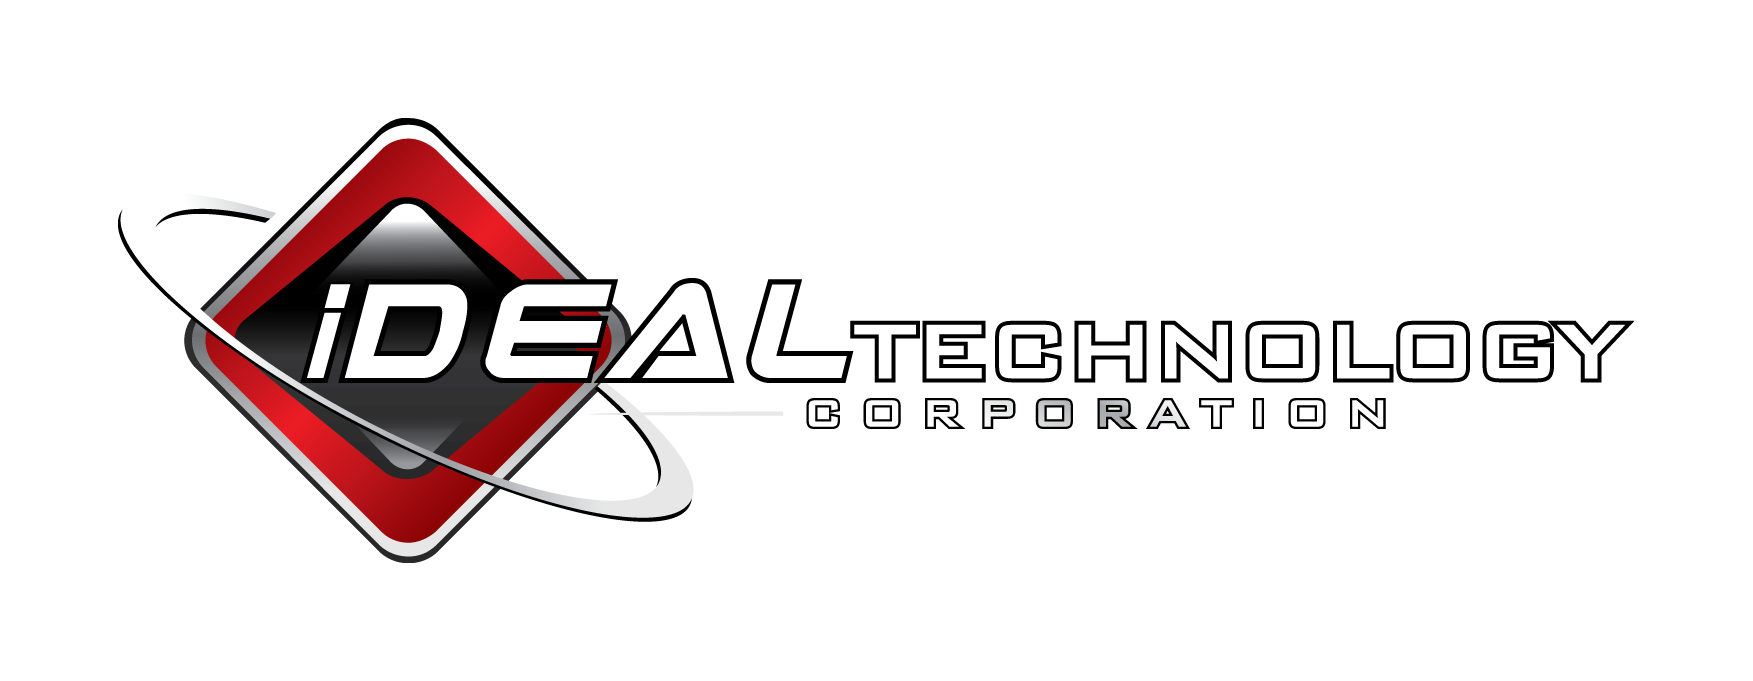 iDEAL Technology Corporation